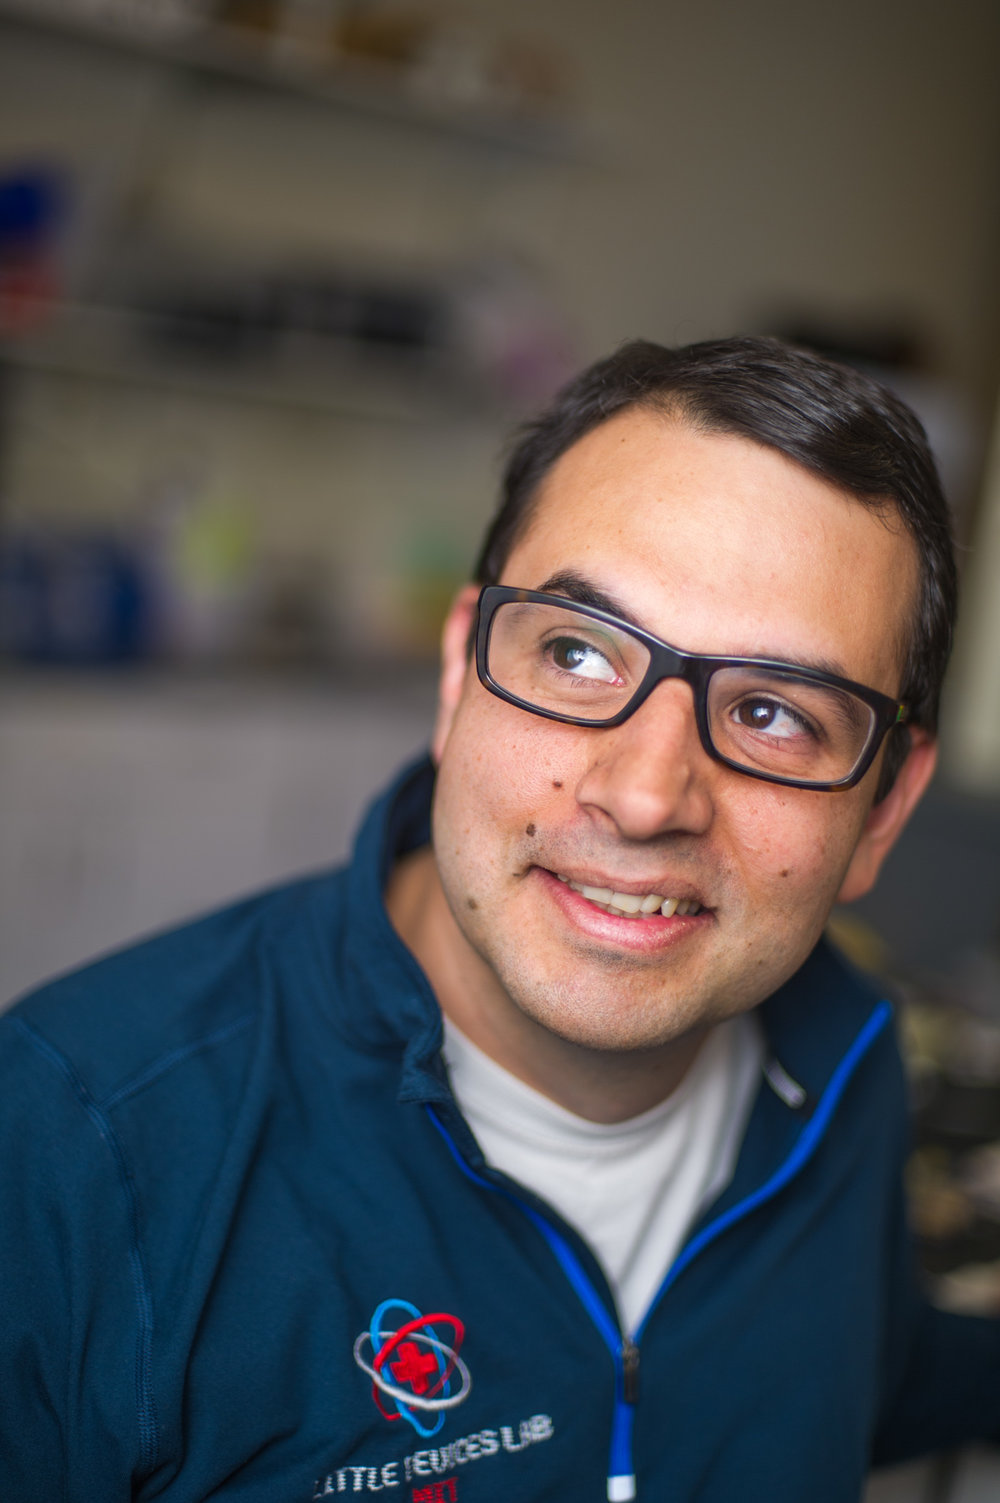 Jose Gomez-Marquez, Director of the Little Devices Lab and the creator of MIT's first course on affordable medical device hardware.